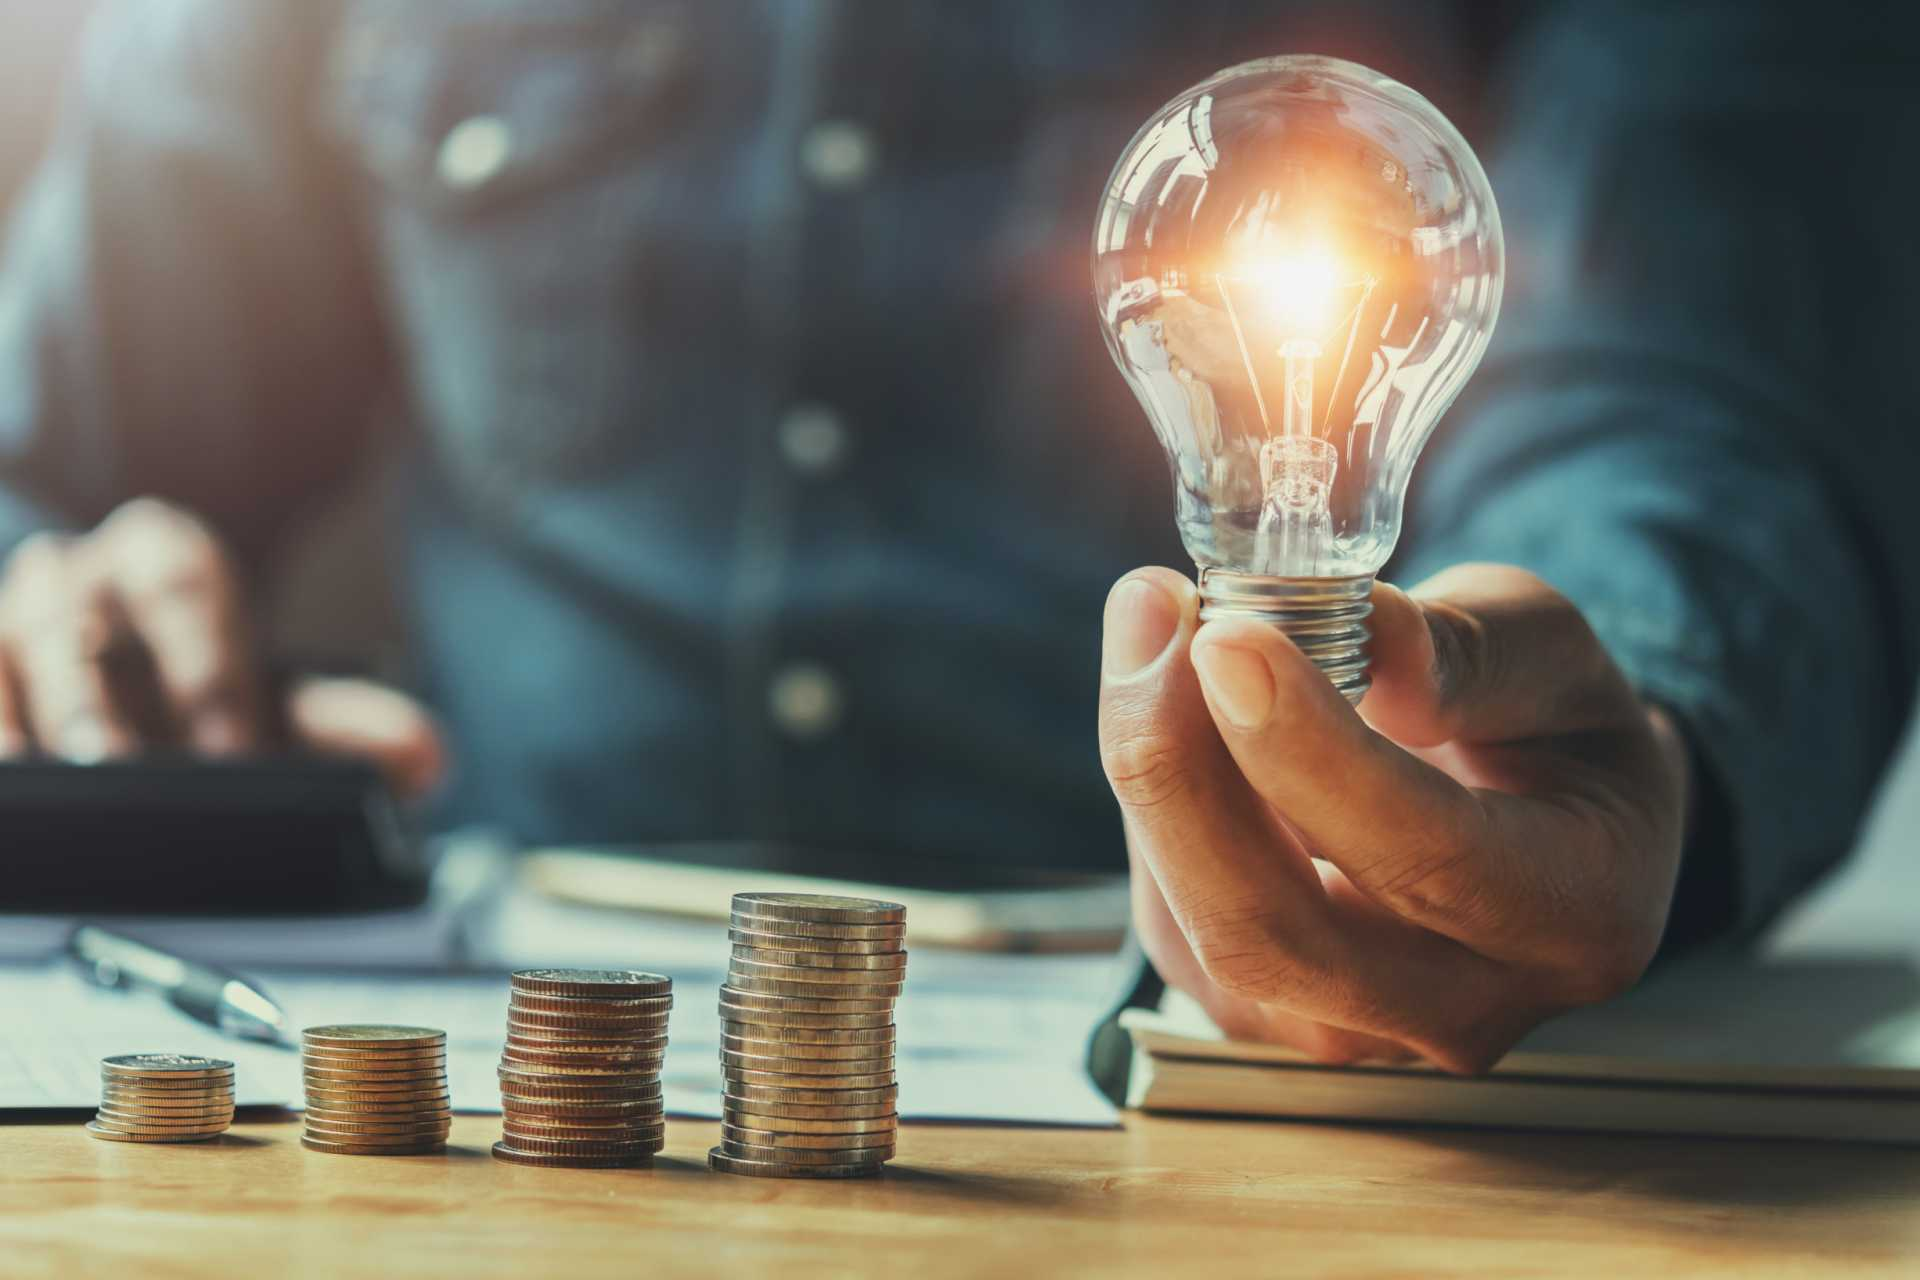 manufacturing finance business man hand holding lightbulb with using calculator to calculate and money stack. idea saving energy and accounting finance in office concept - Shutterstock